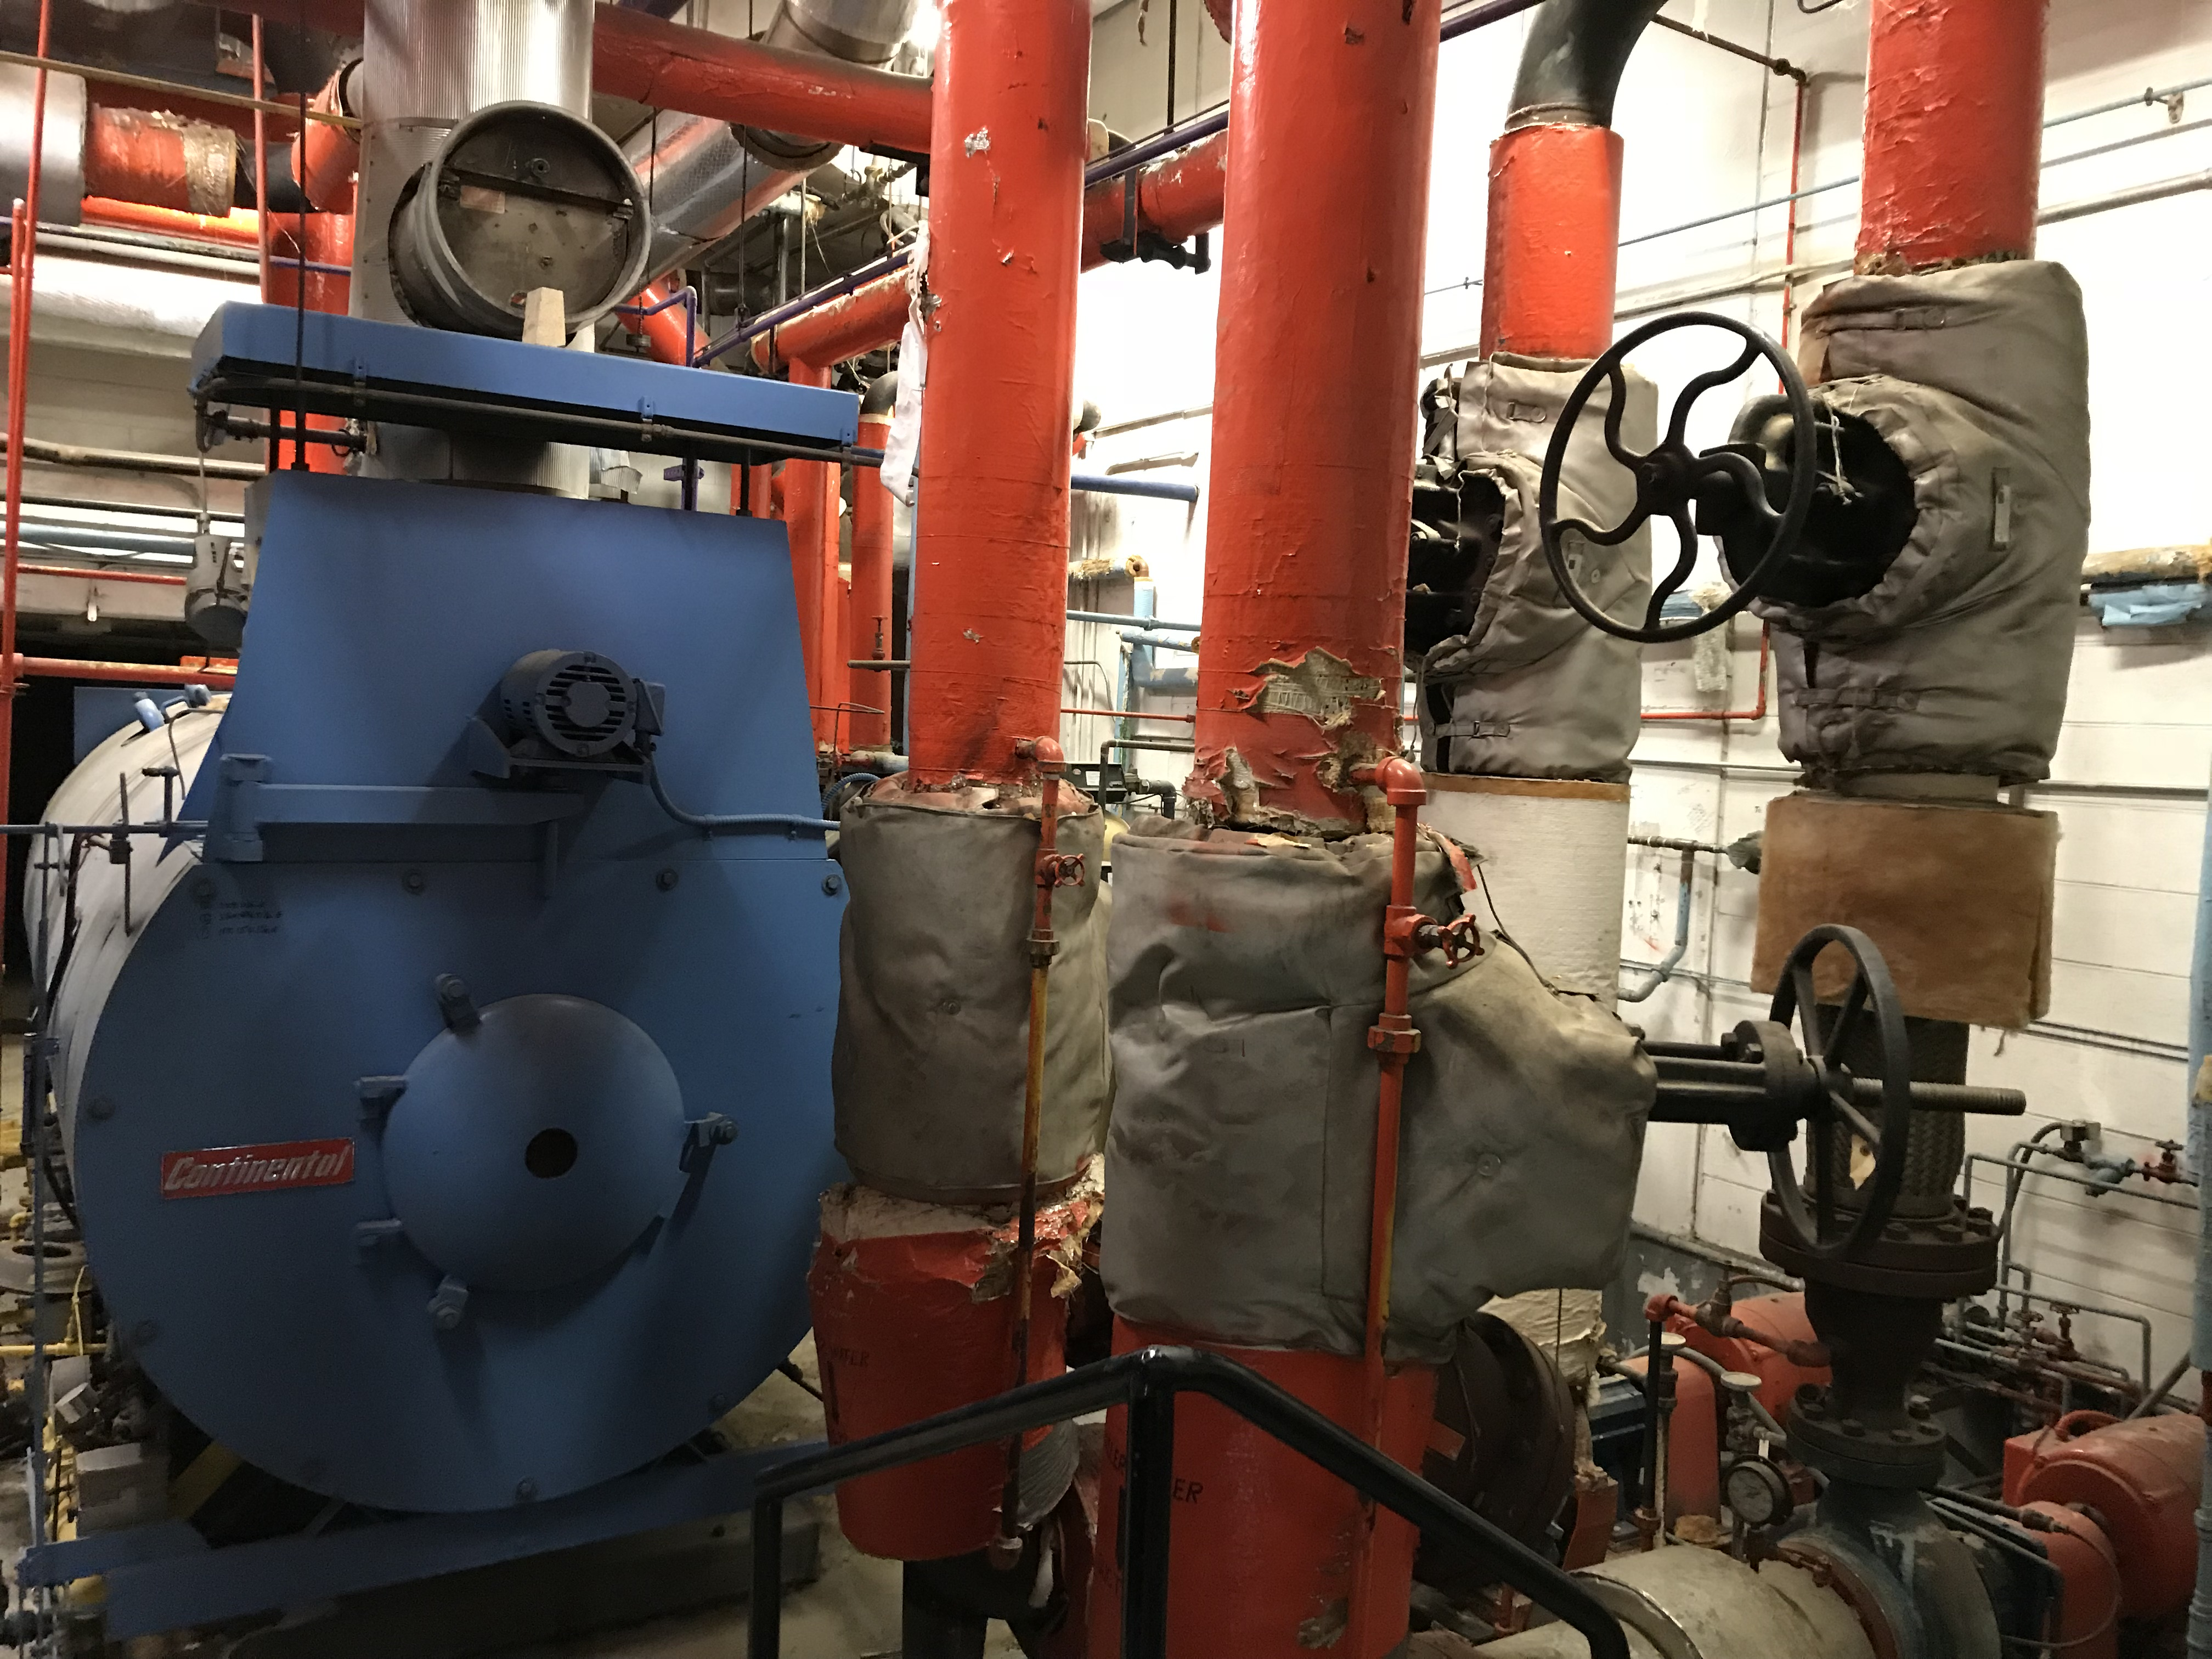 Basement boiler room.